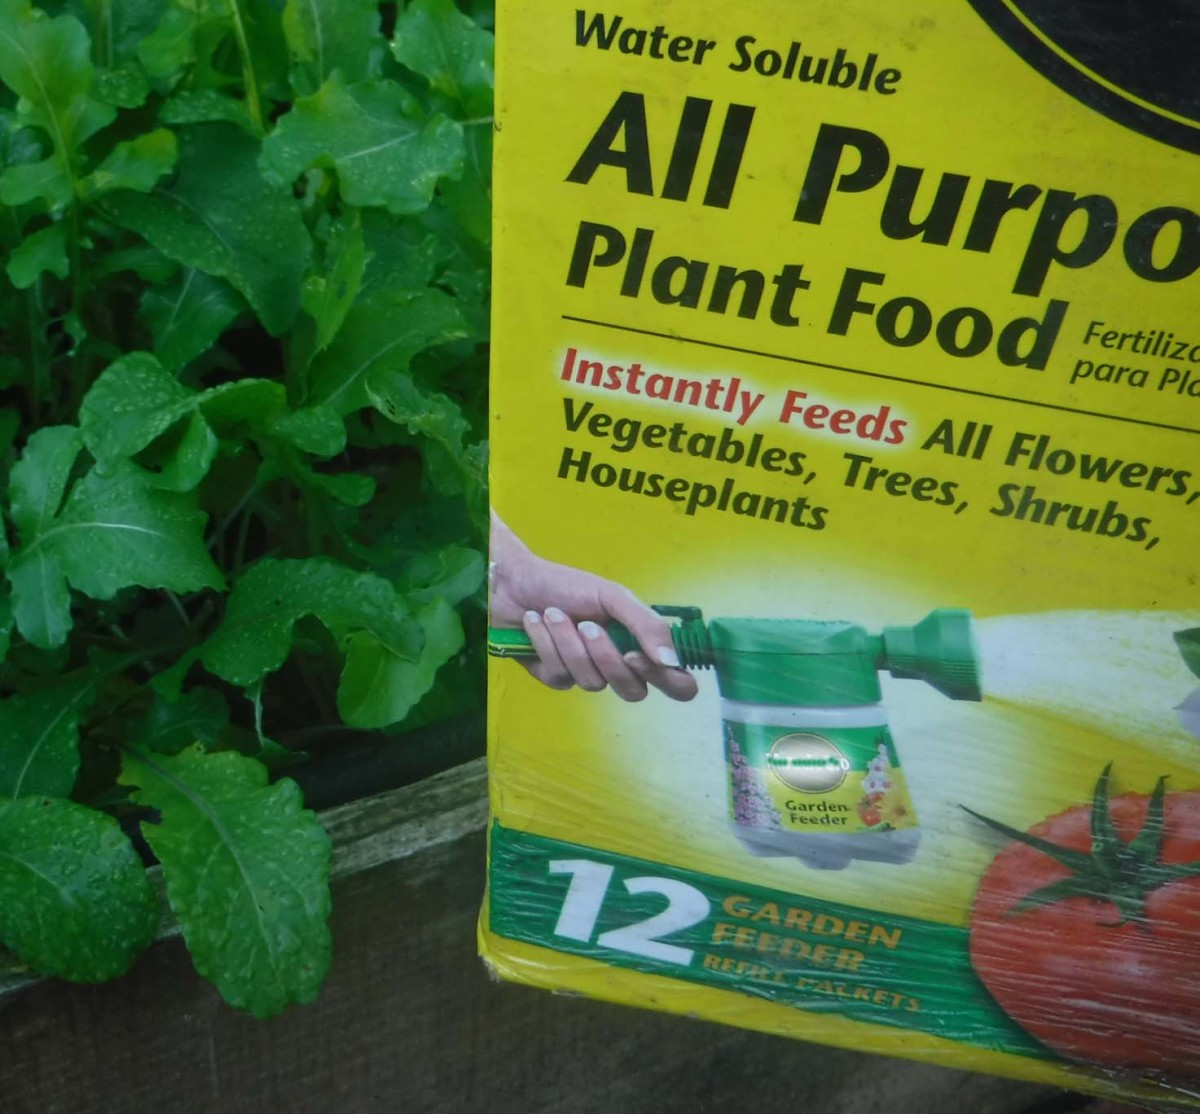 Plant food adds nutrition to soil.